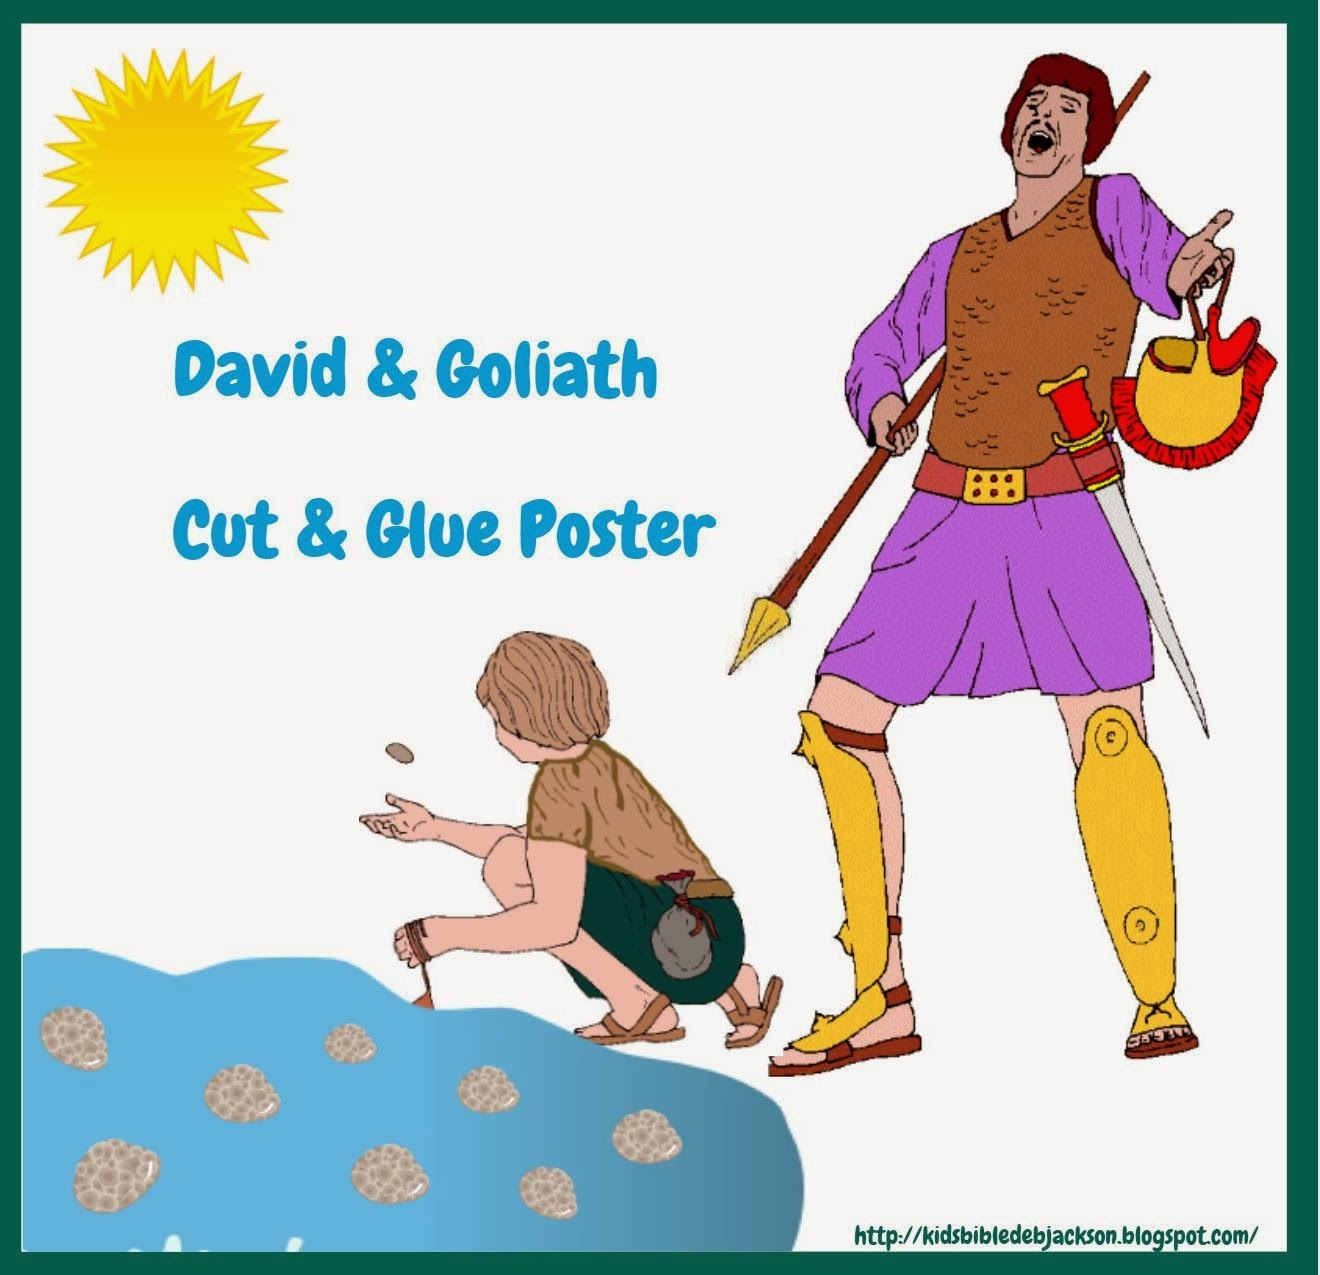 http://kidsbibledebjackson.blogspot.com/2014/02/david-and-goliath.html